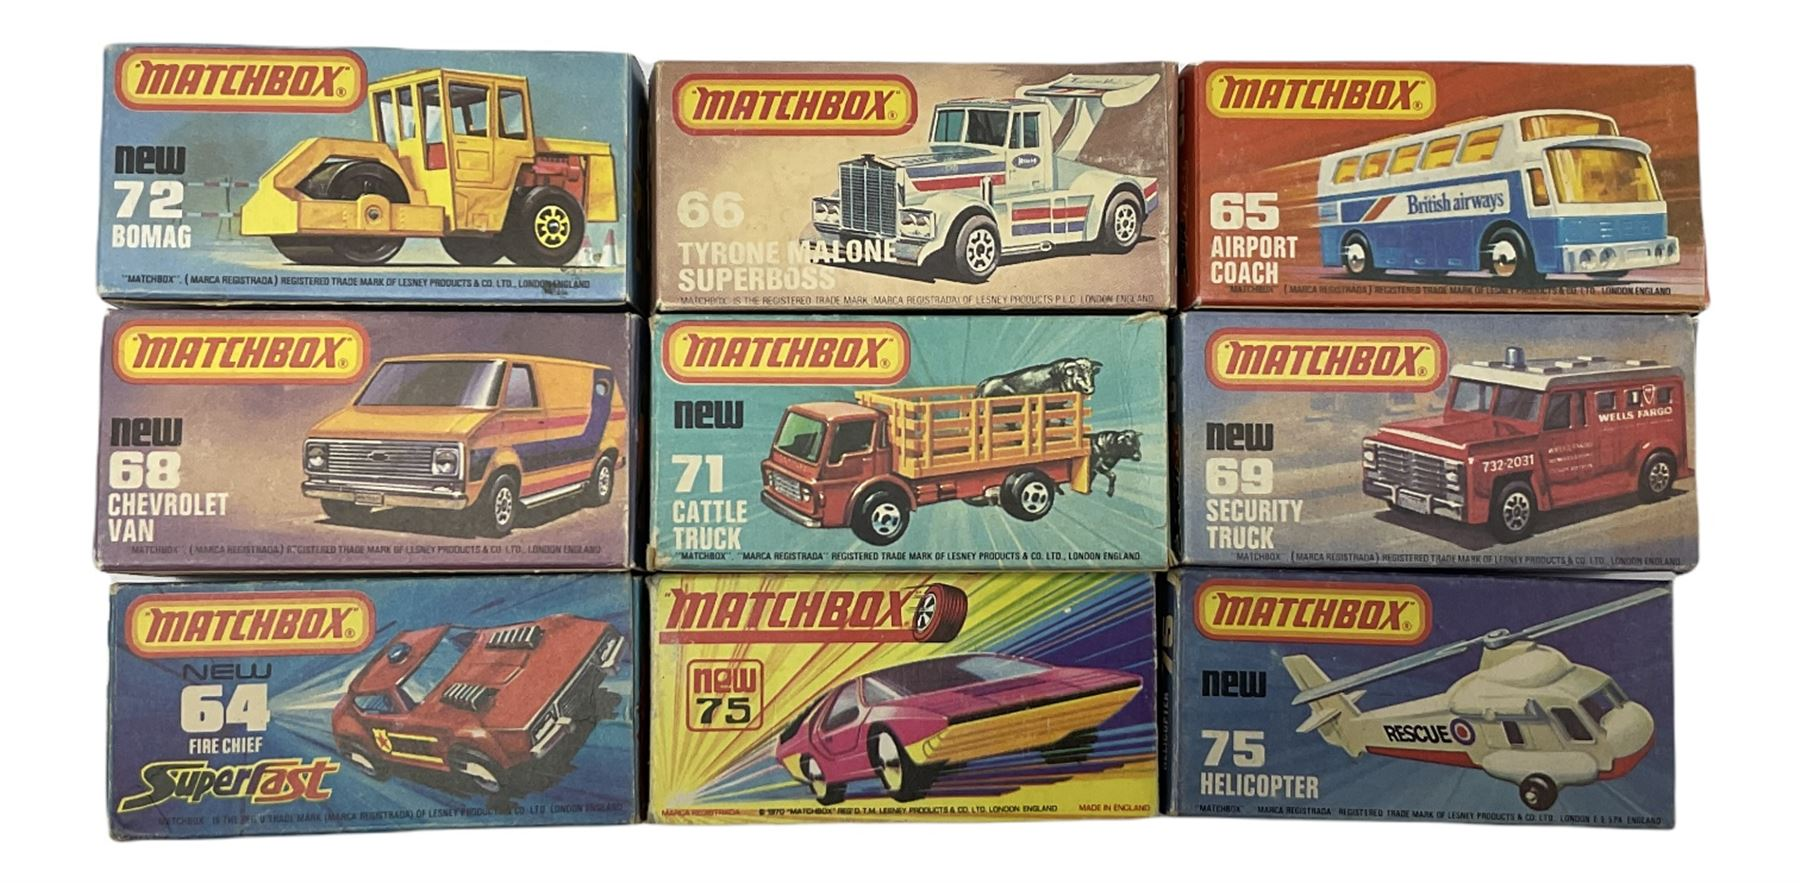 Matchbox/Superfast - nine '1-75' series models comprising 64d Fire Chief car - Image 2 of 8